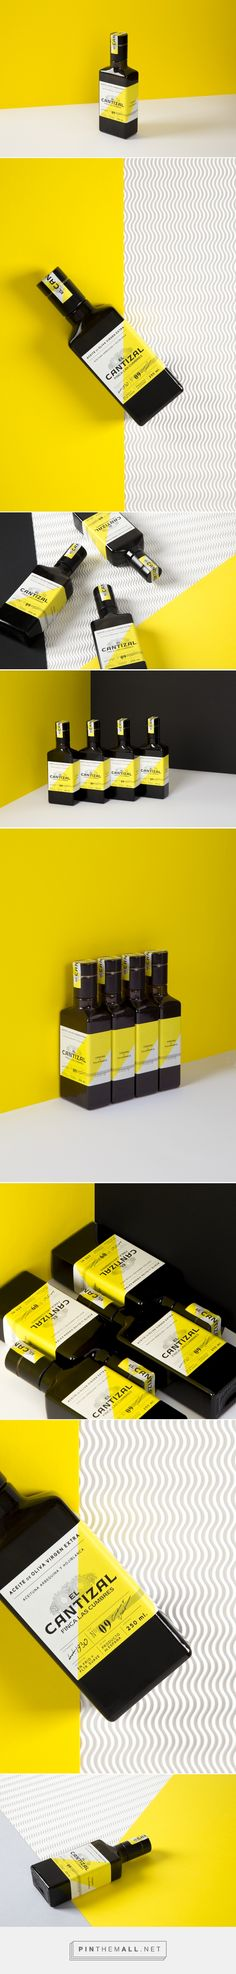 El Cantizal Extra Virgin Olive Oil packaging design art directed by Alice Pesenti - http://www.packagingoftheworld.com/2017/01/el-cantizal-extra-virgin-olive-oil.html